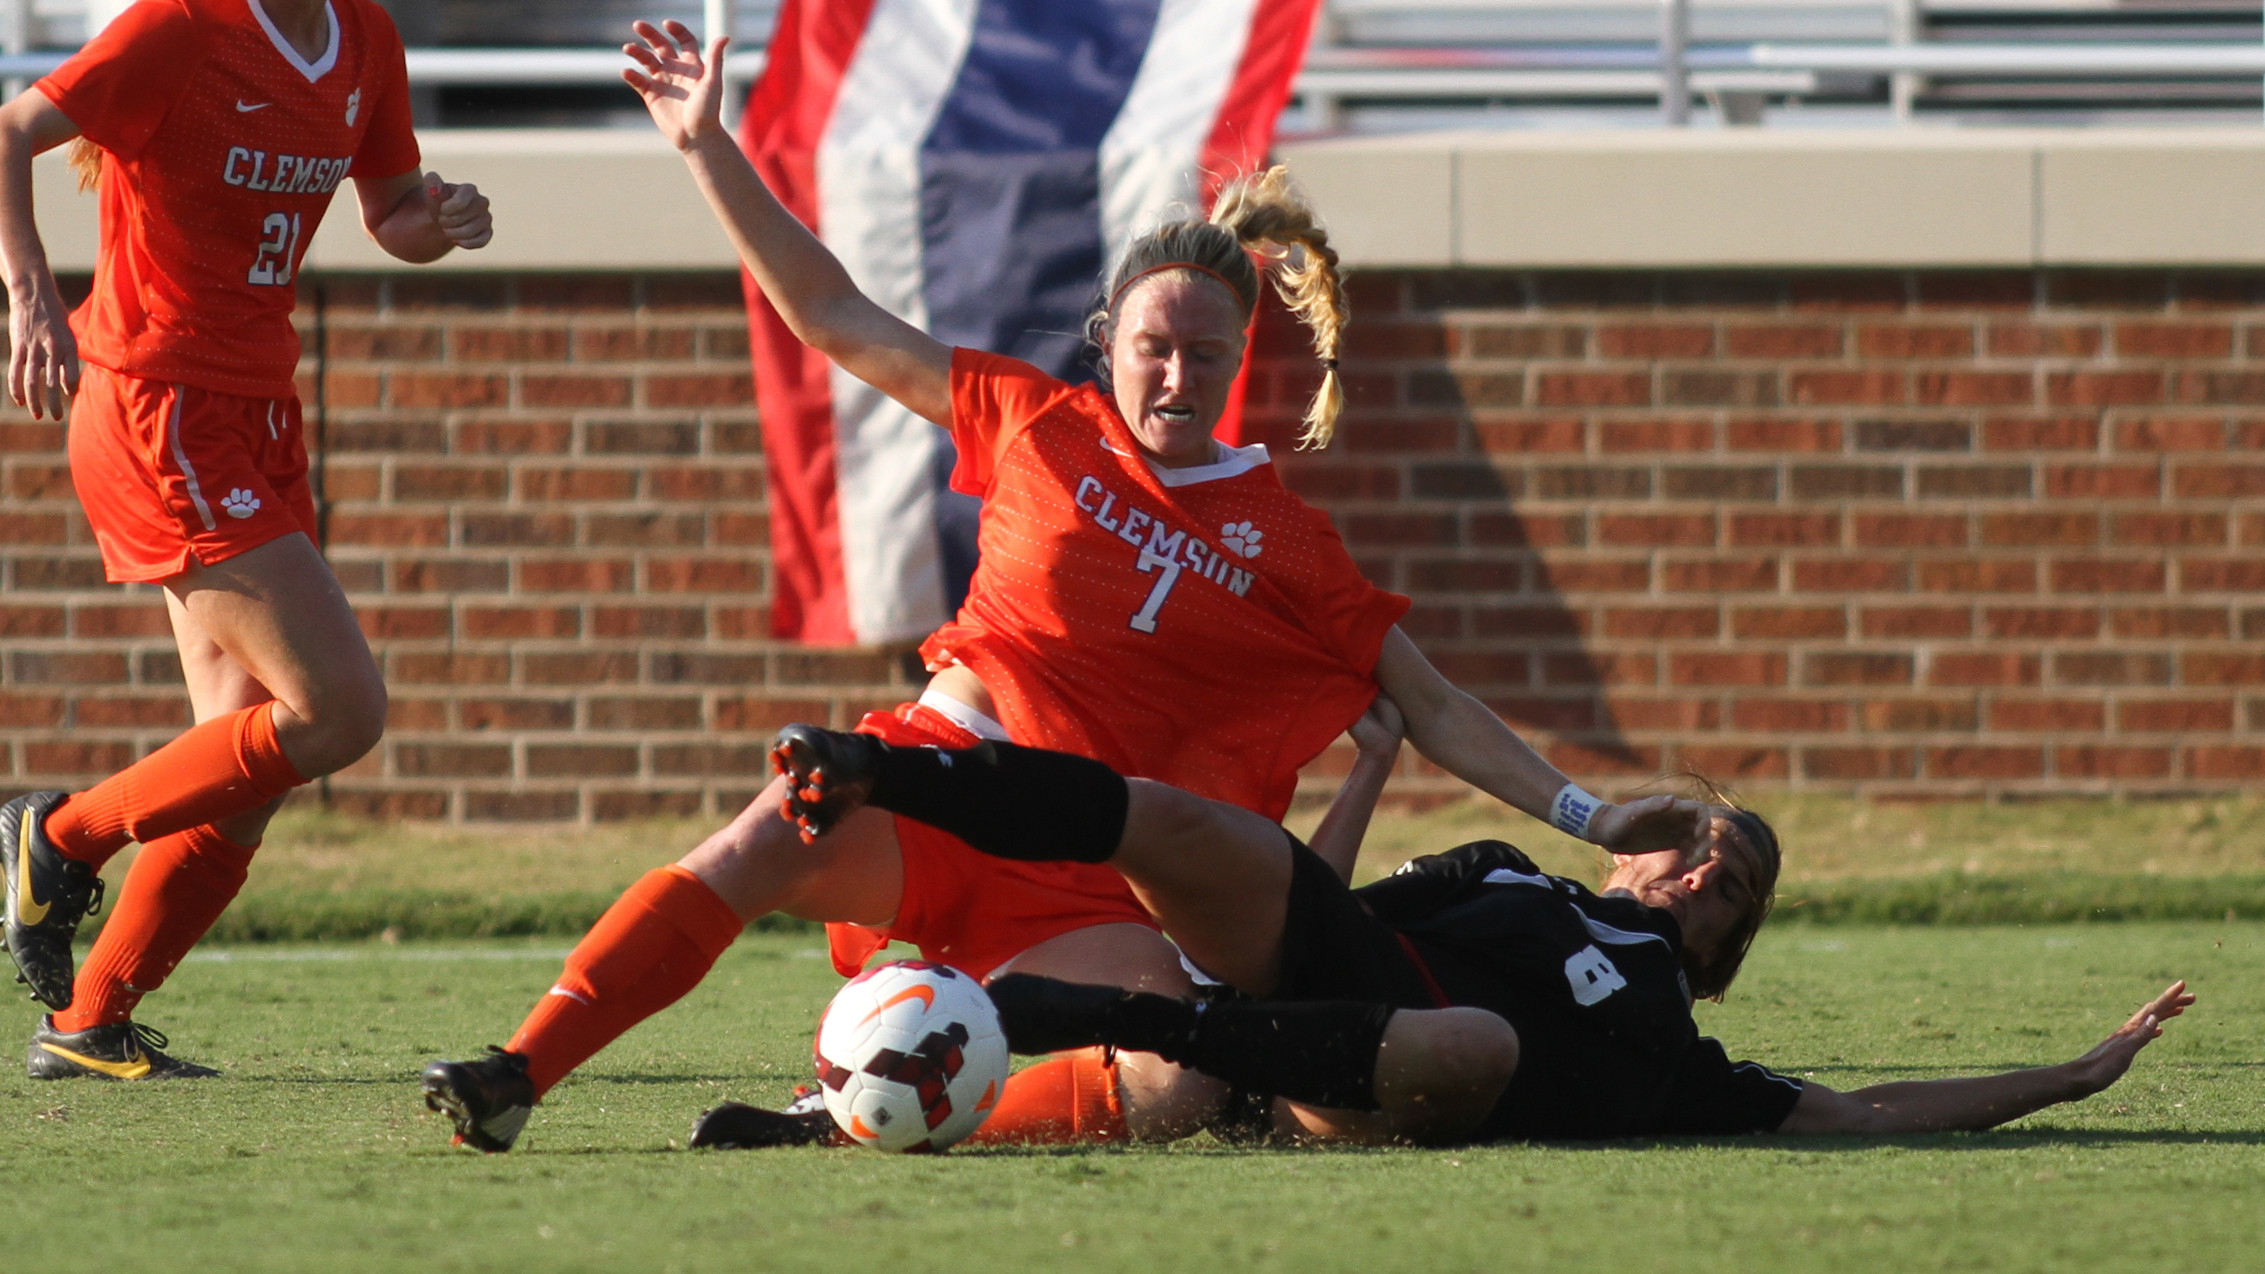 EXCLUSIVE: Padgett Excelling on Both Ends of the Pitch as a Senior